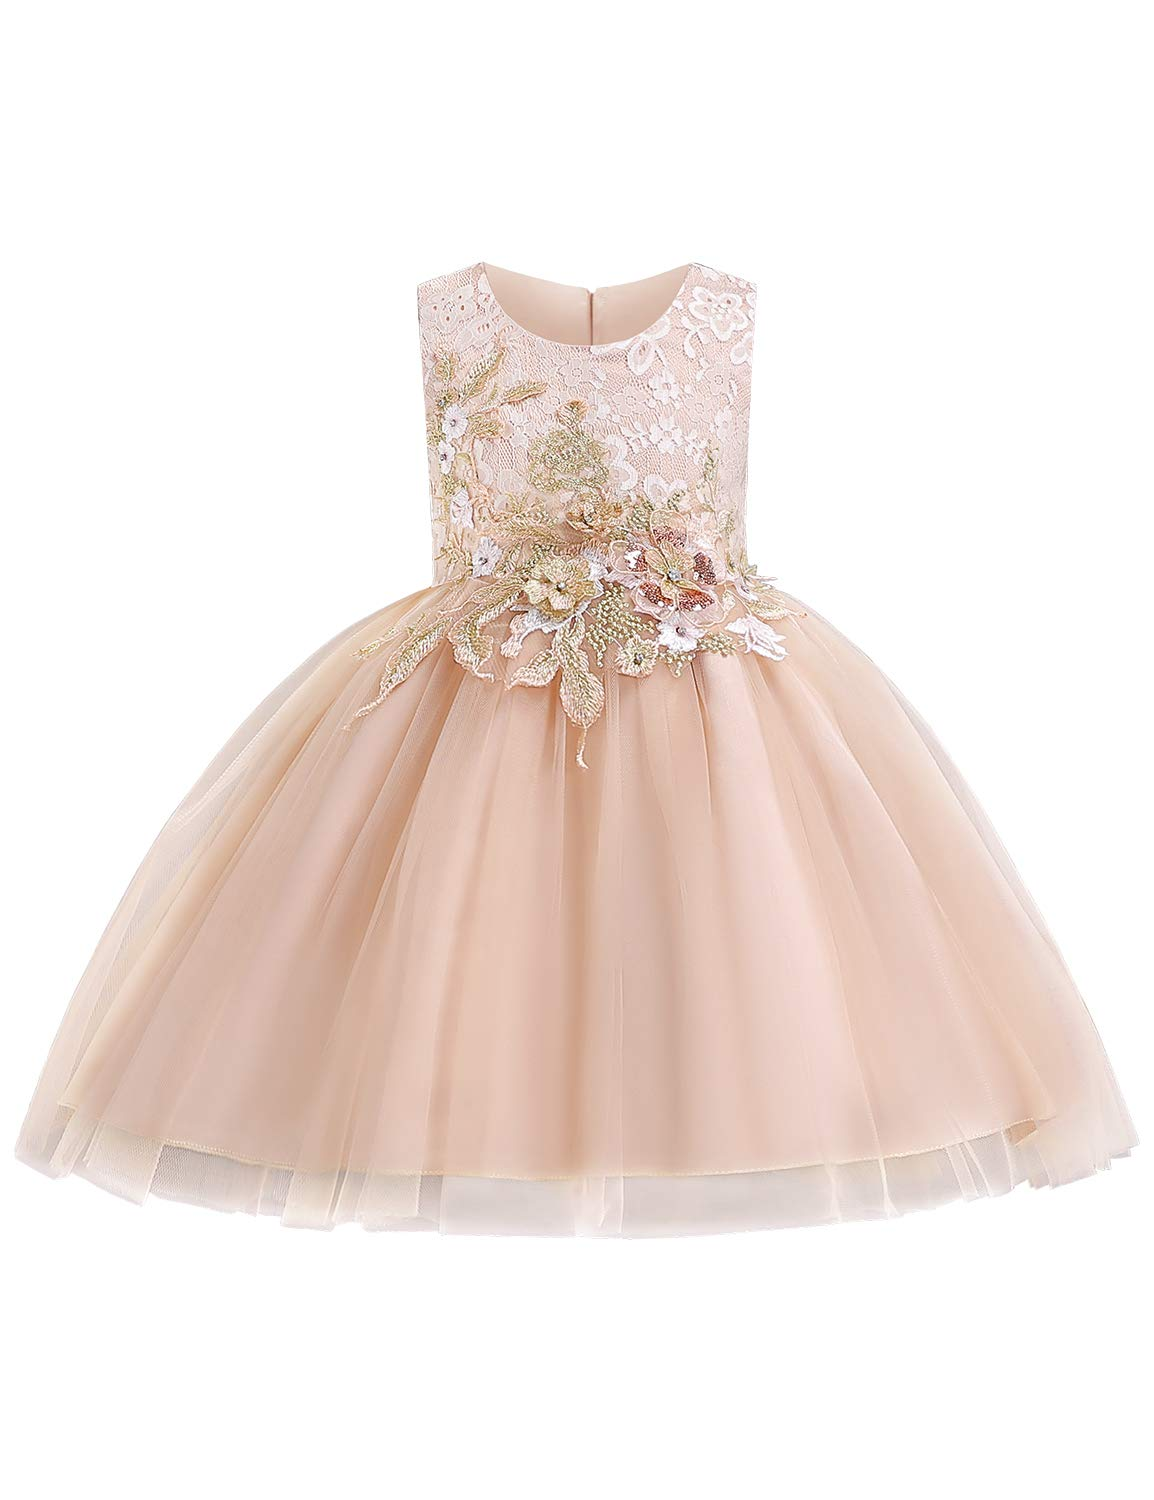 YaYa Bay Flower Girl Dress, Party Wear Special Occasion Wedding Bridal Dresses for Girls Communion Sleeveless 3D Embroidered Elegant Formal Pageant Prom Ball Gowns Champagne Size (130) 4-5 Years